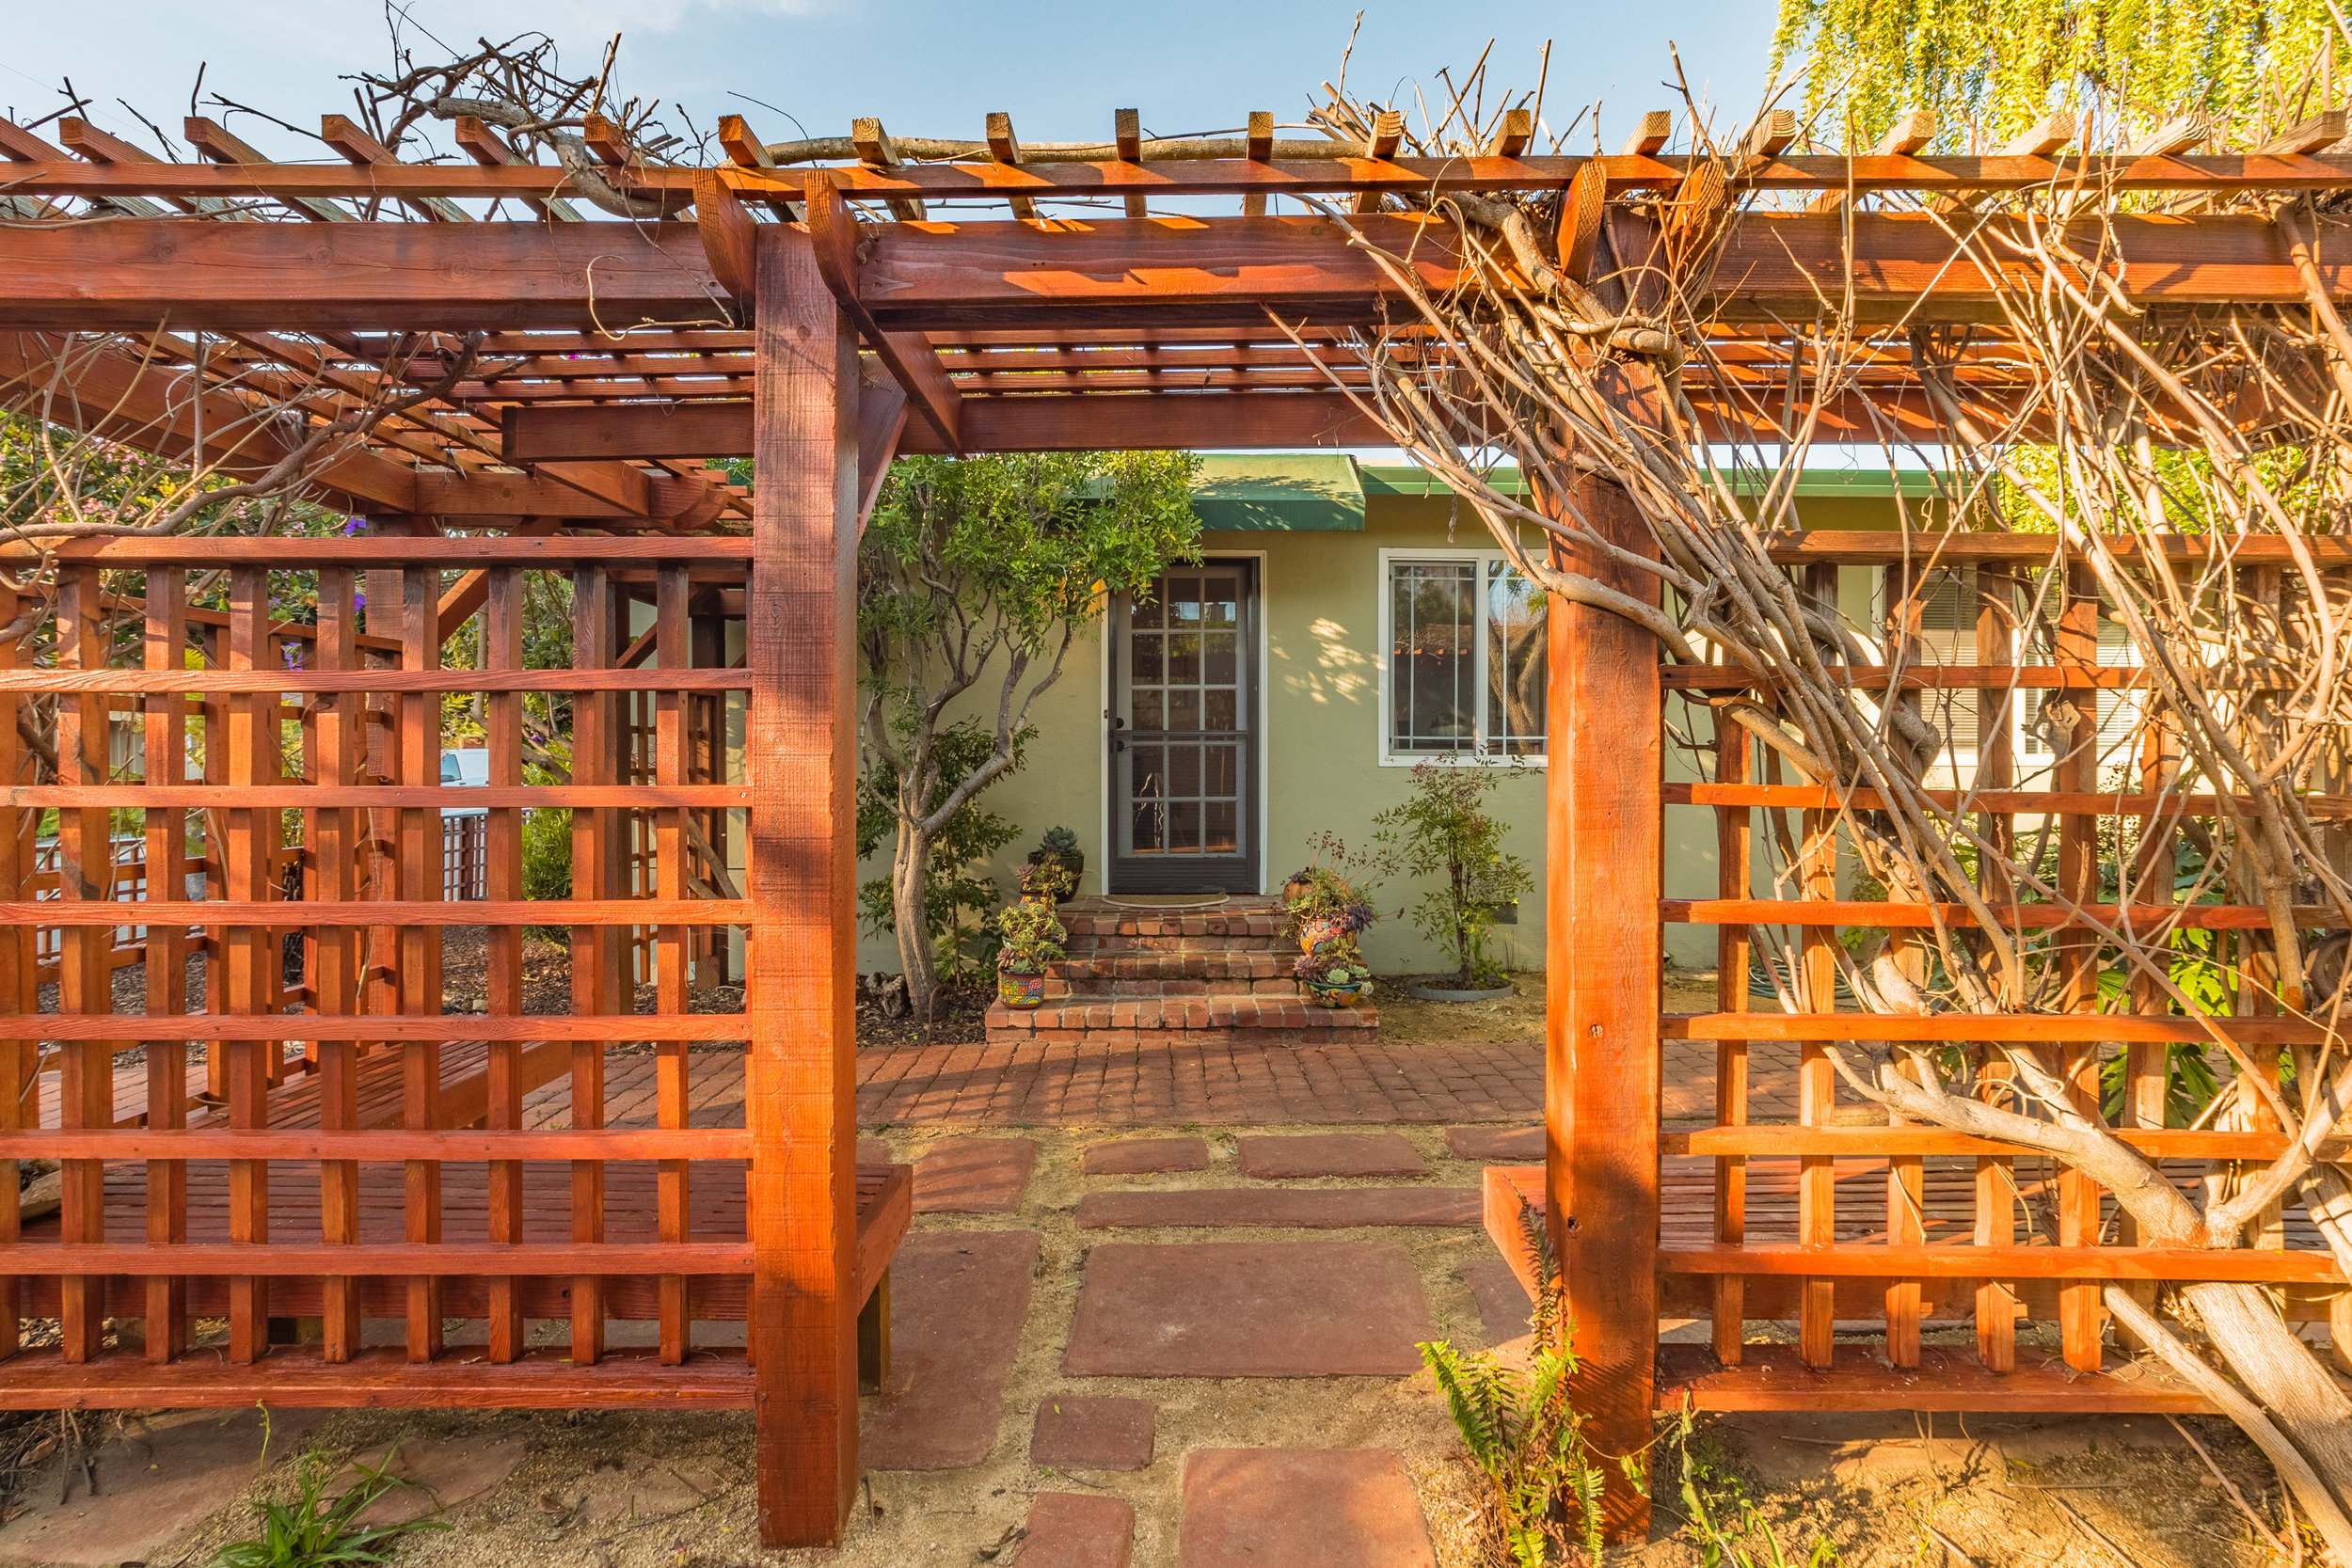 Investment Property Capitola California.jpg